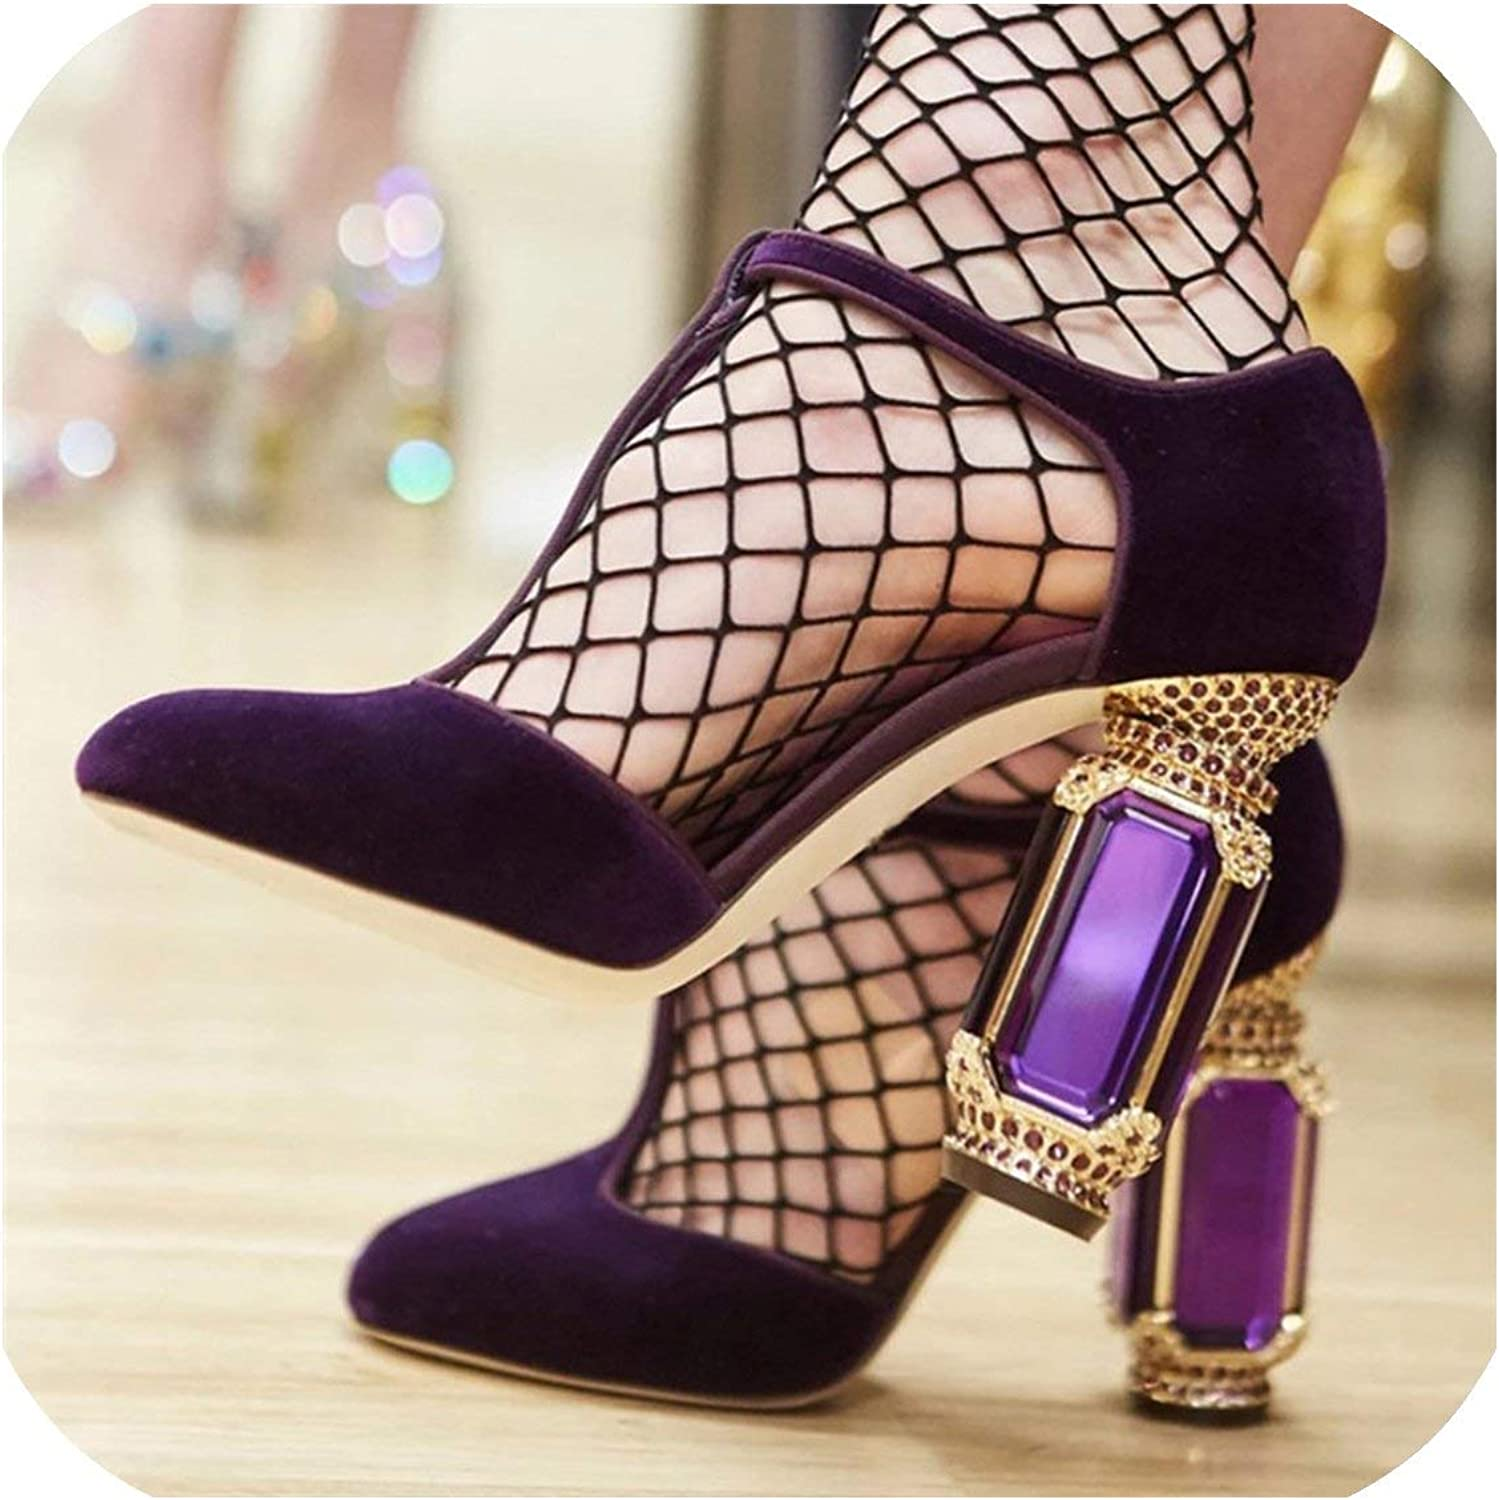 The Hot Rock-sandals Retro Crystal Heel Women Pumps Sexy High Heels Velvet Mary Jane shoes Woman Wedding shoes Stiletto Valentine shoes